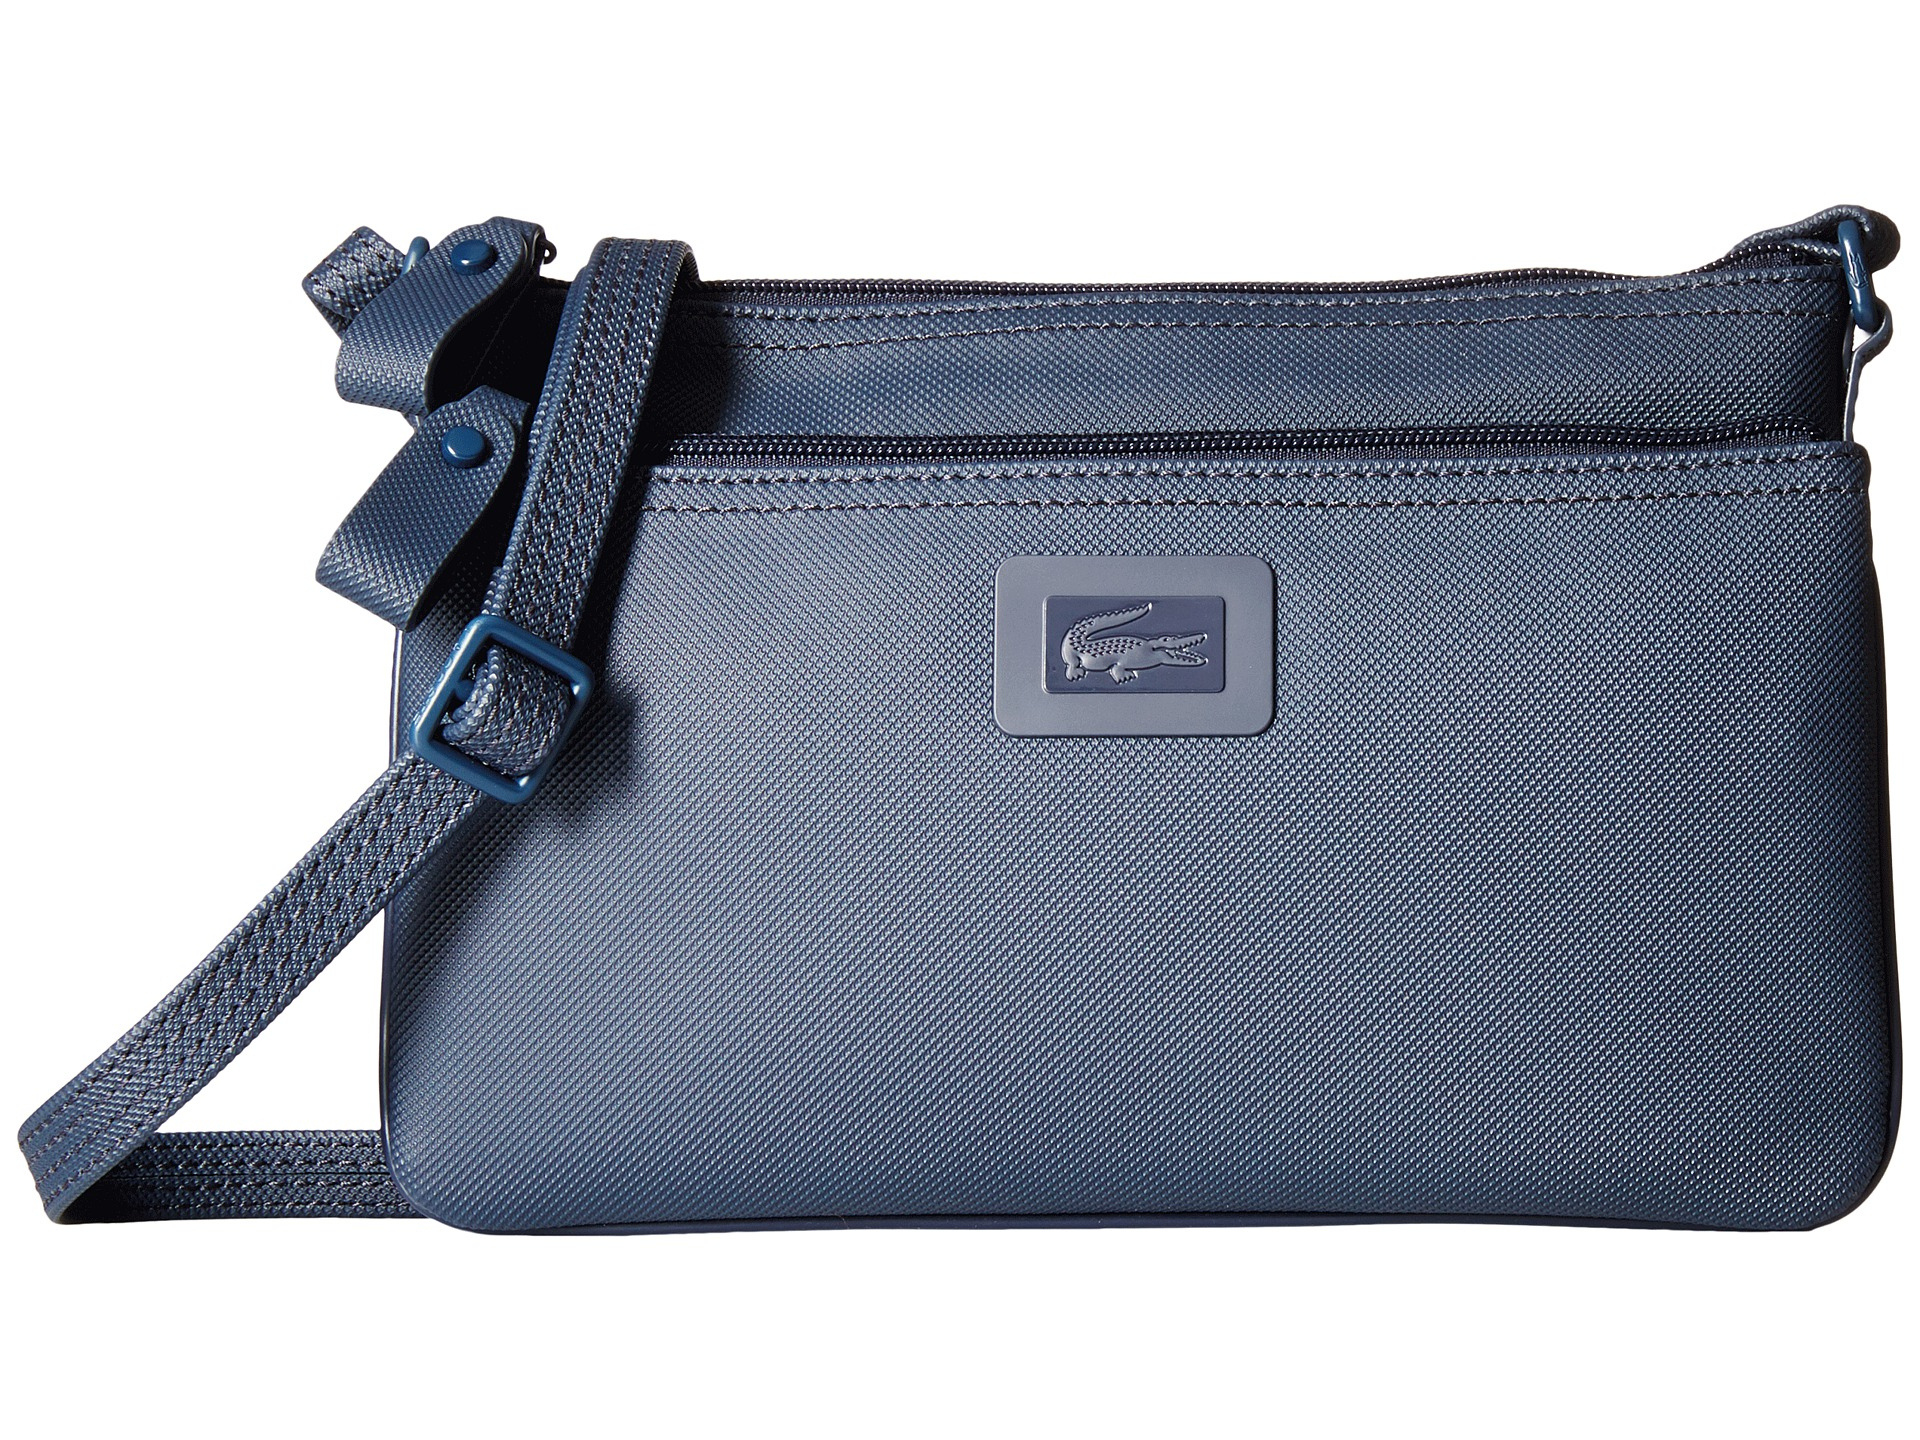 eae0c5b260a093 Lyst - Lacoste Crossover Bag